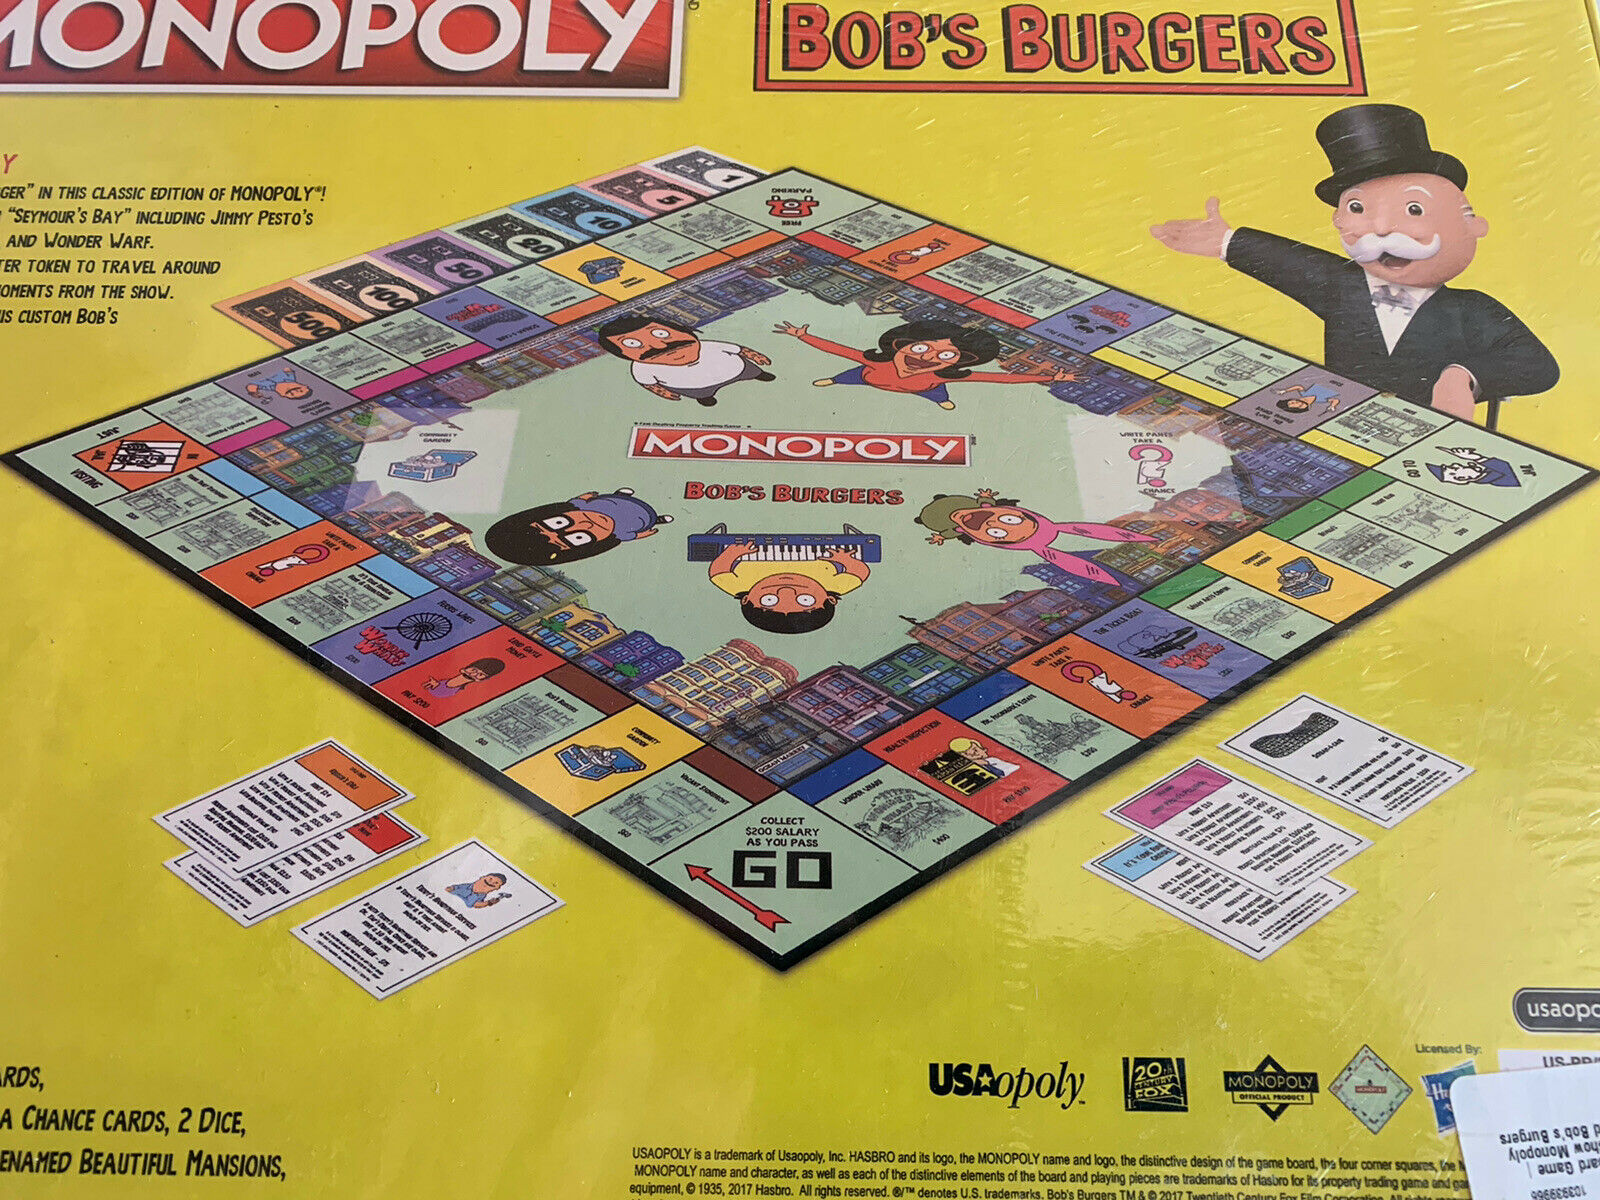 MONOPOLY®: Bob's Burgers Board Game USAopoly